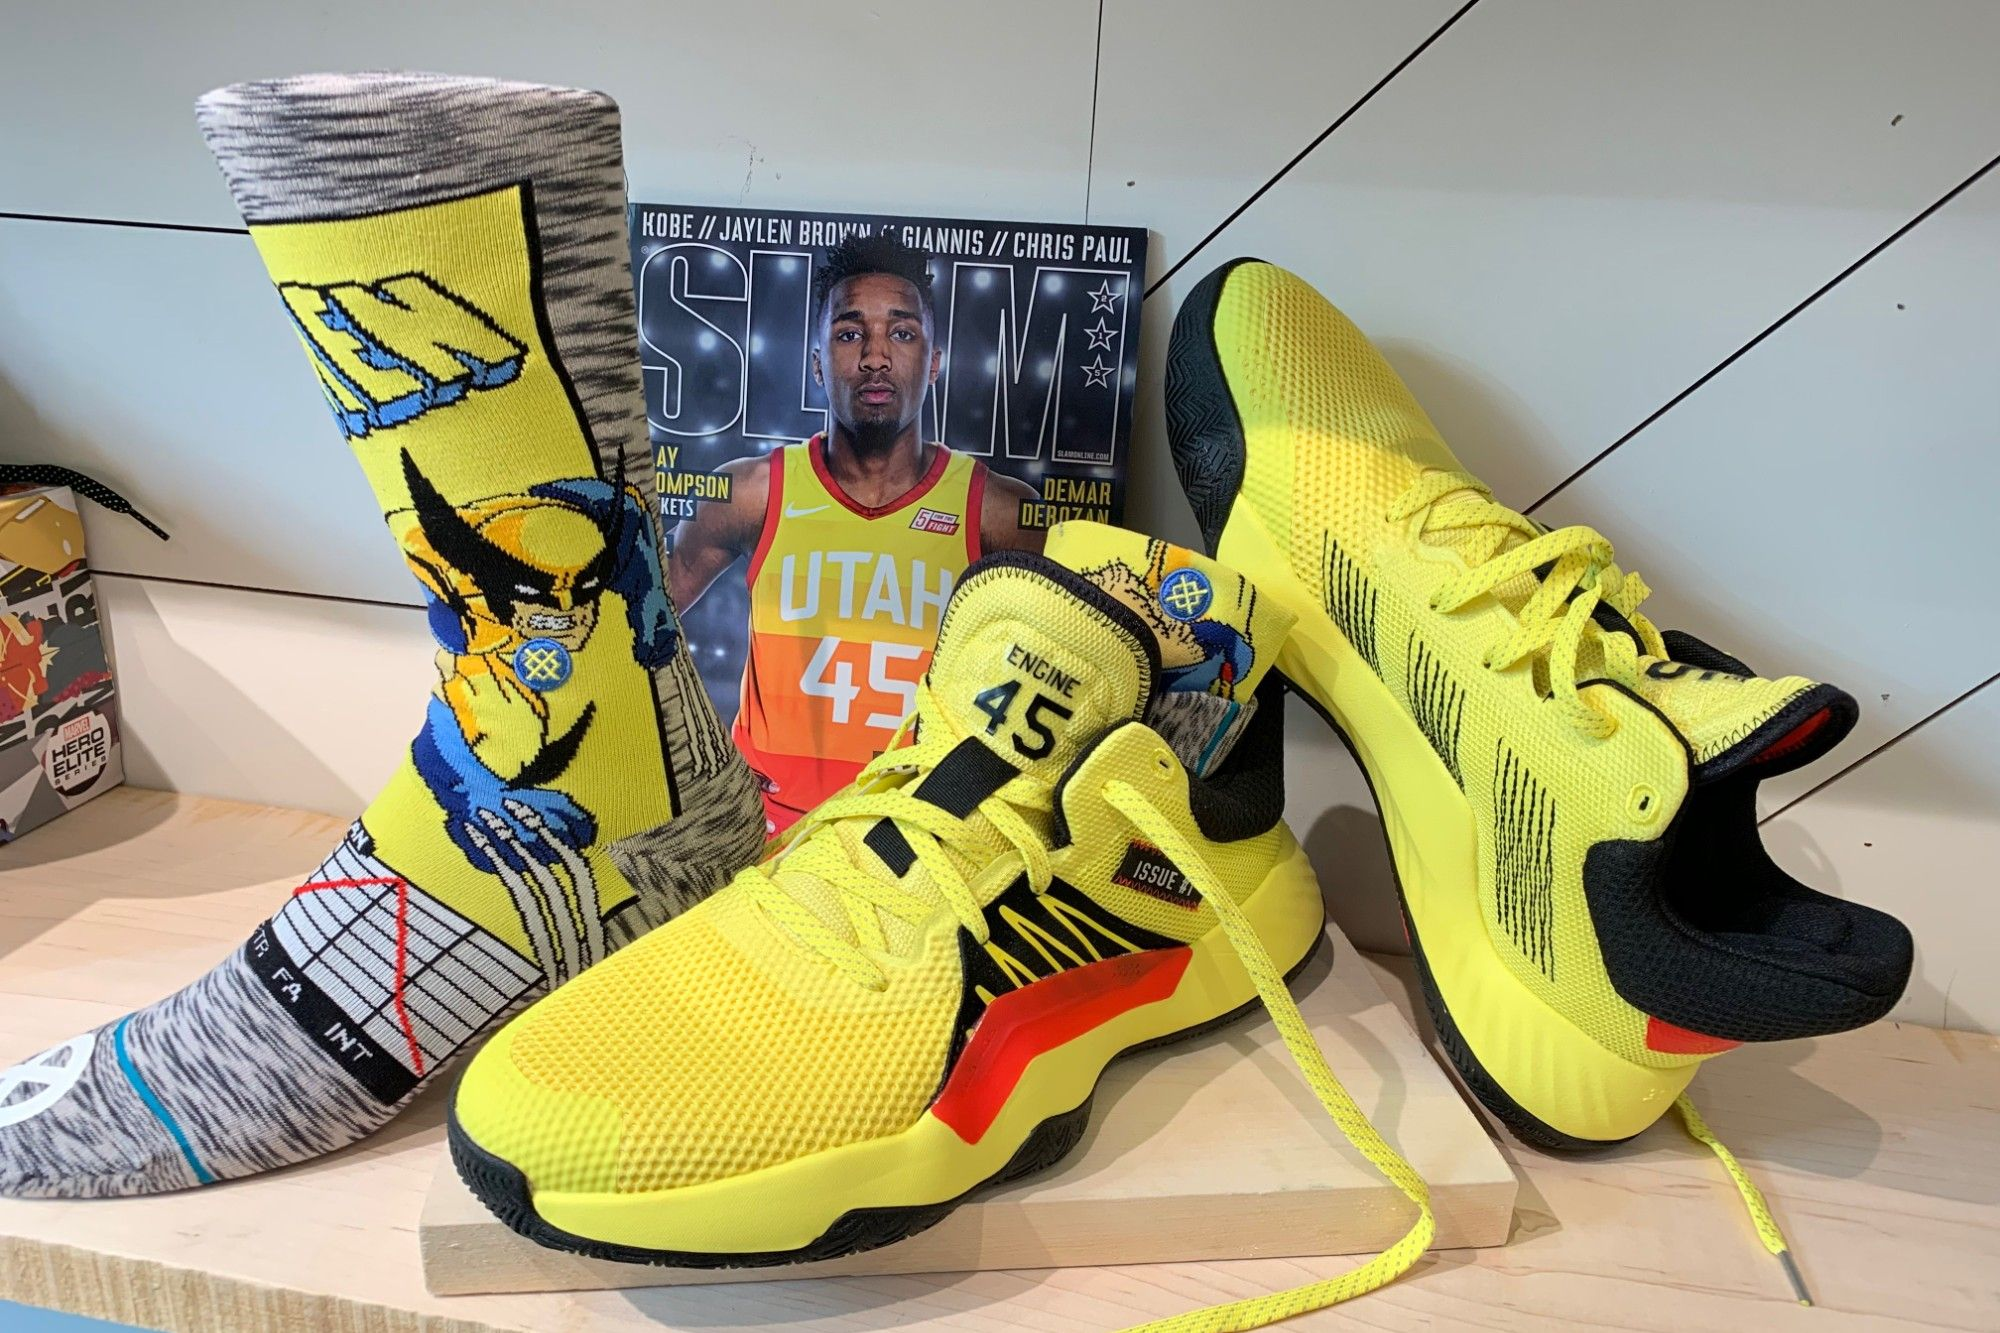 Ascending Brands Stance and Donovan Mitchell Combine Forces in Salt Lake City